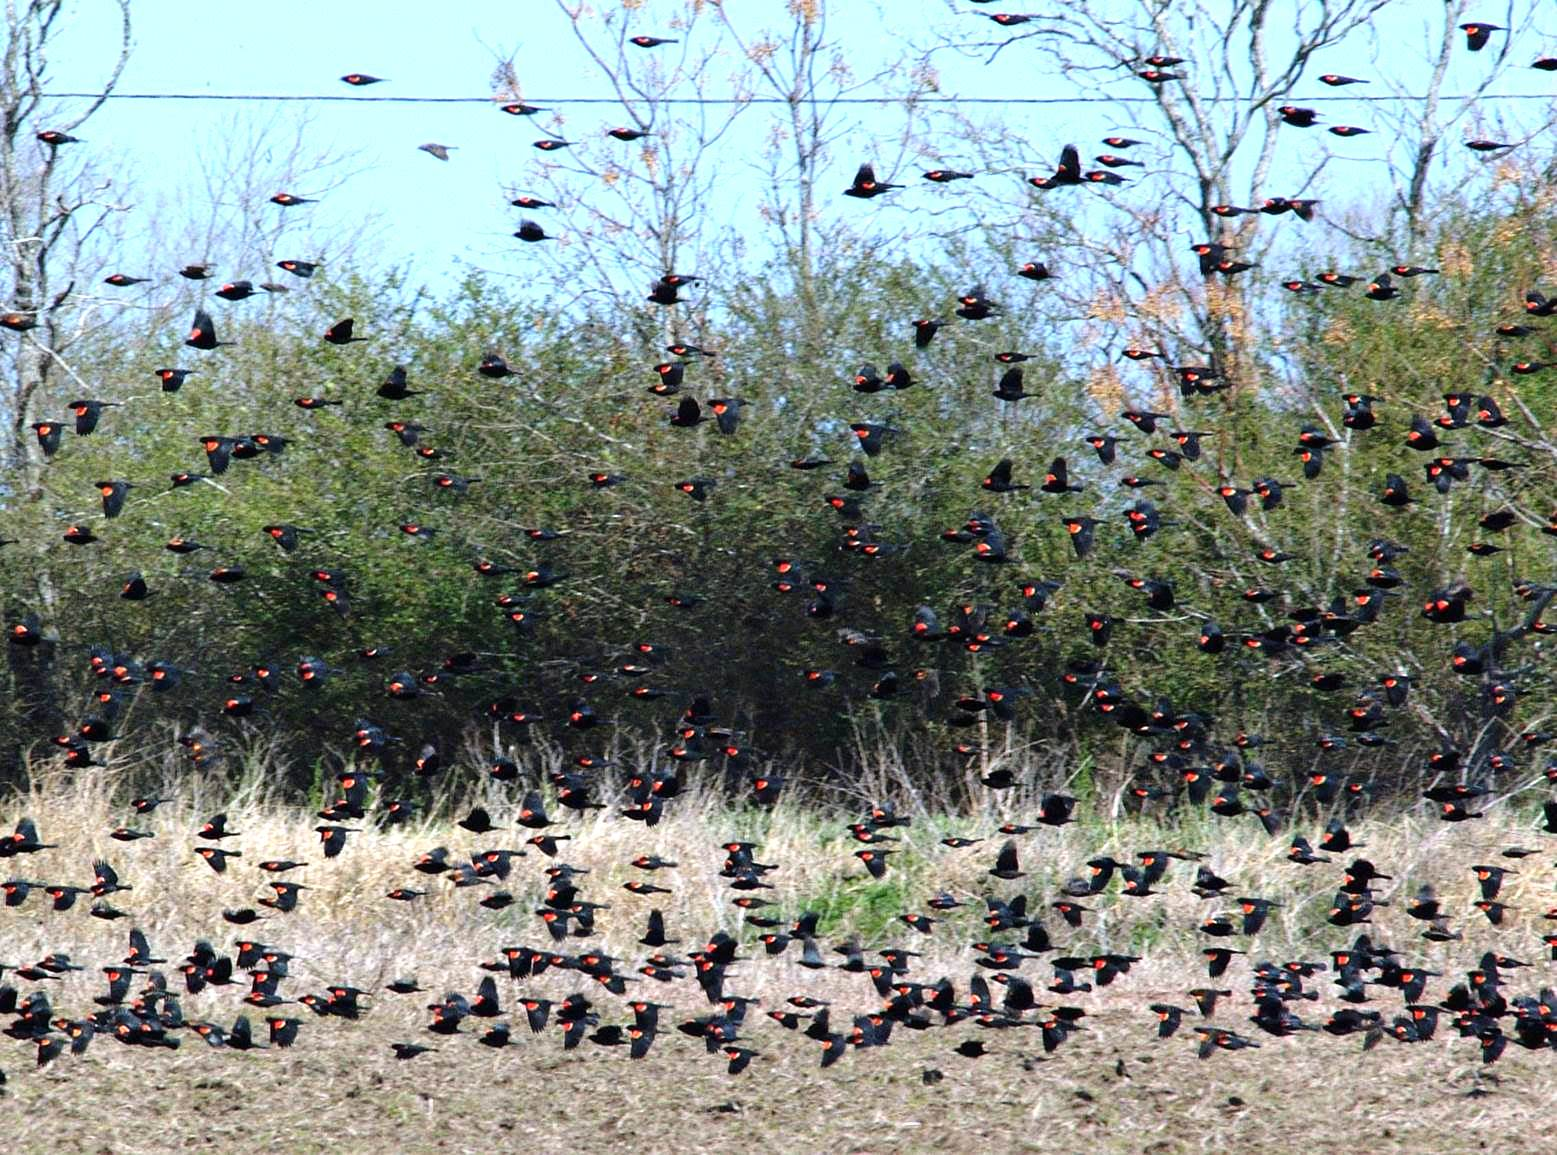 Blackbirds a Significant Problem in Louisiana Rice Production